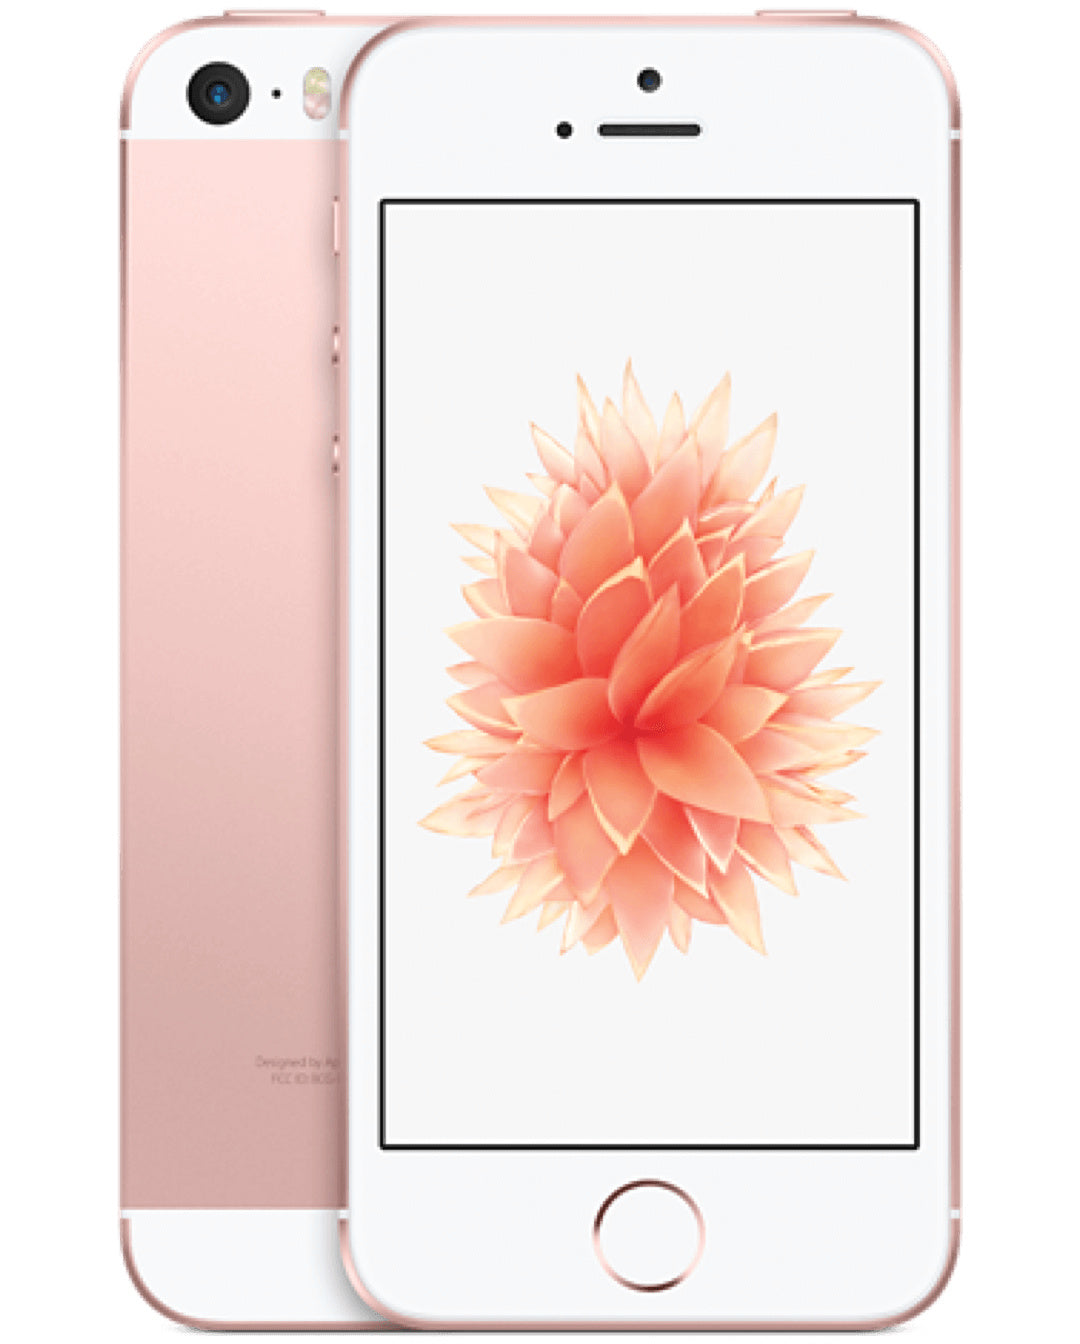 Refurbished Apple iPhone SE 128GB-RoseGold-Als nieuw